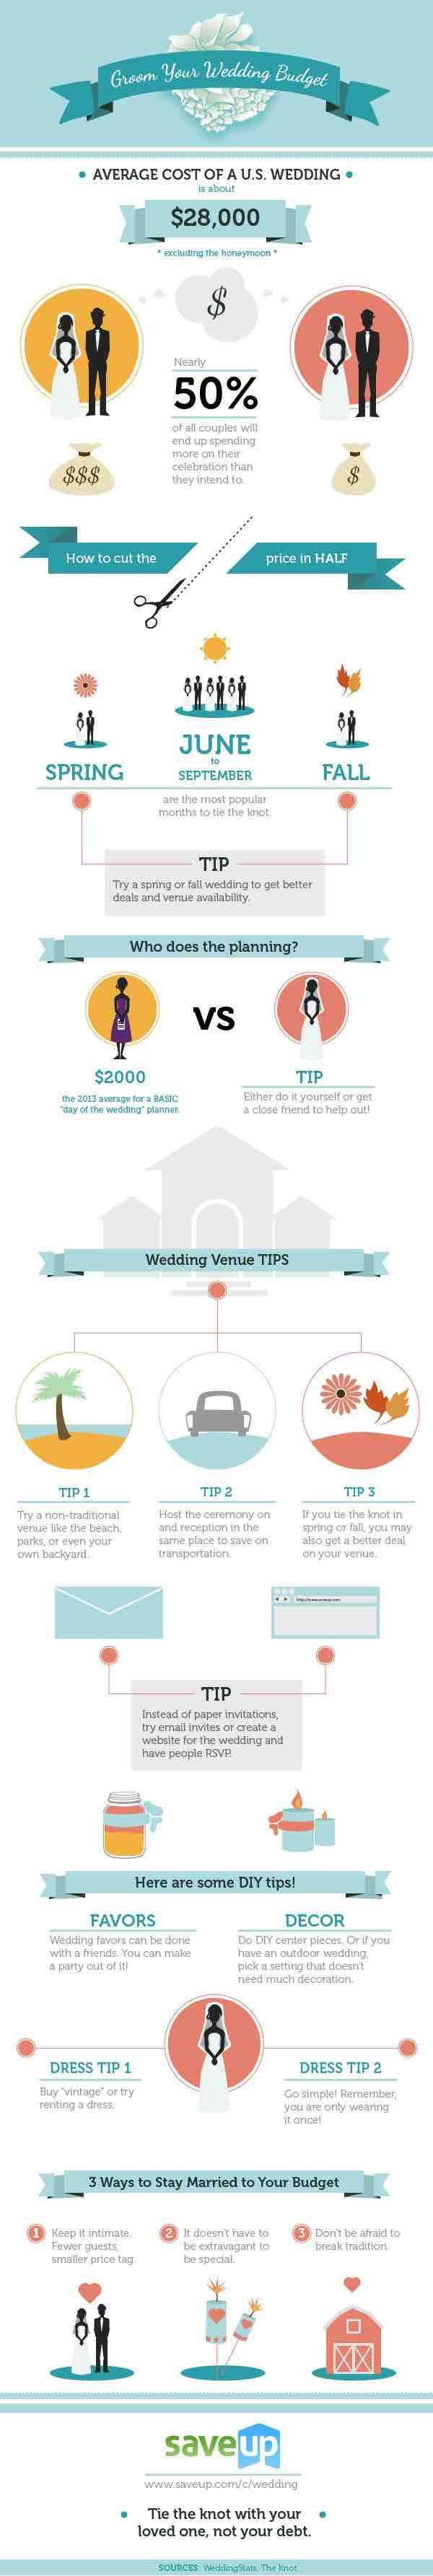 Based on the average U.S. wedding budget, this chart helps you see where you may be able to save. When you're planning such a big event, every dollar counts! - via Save Up